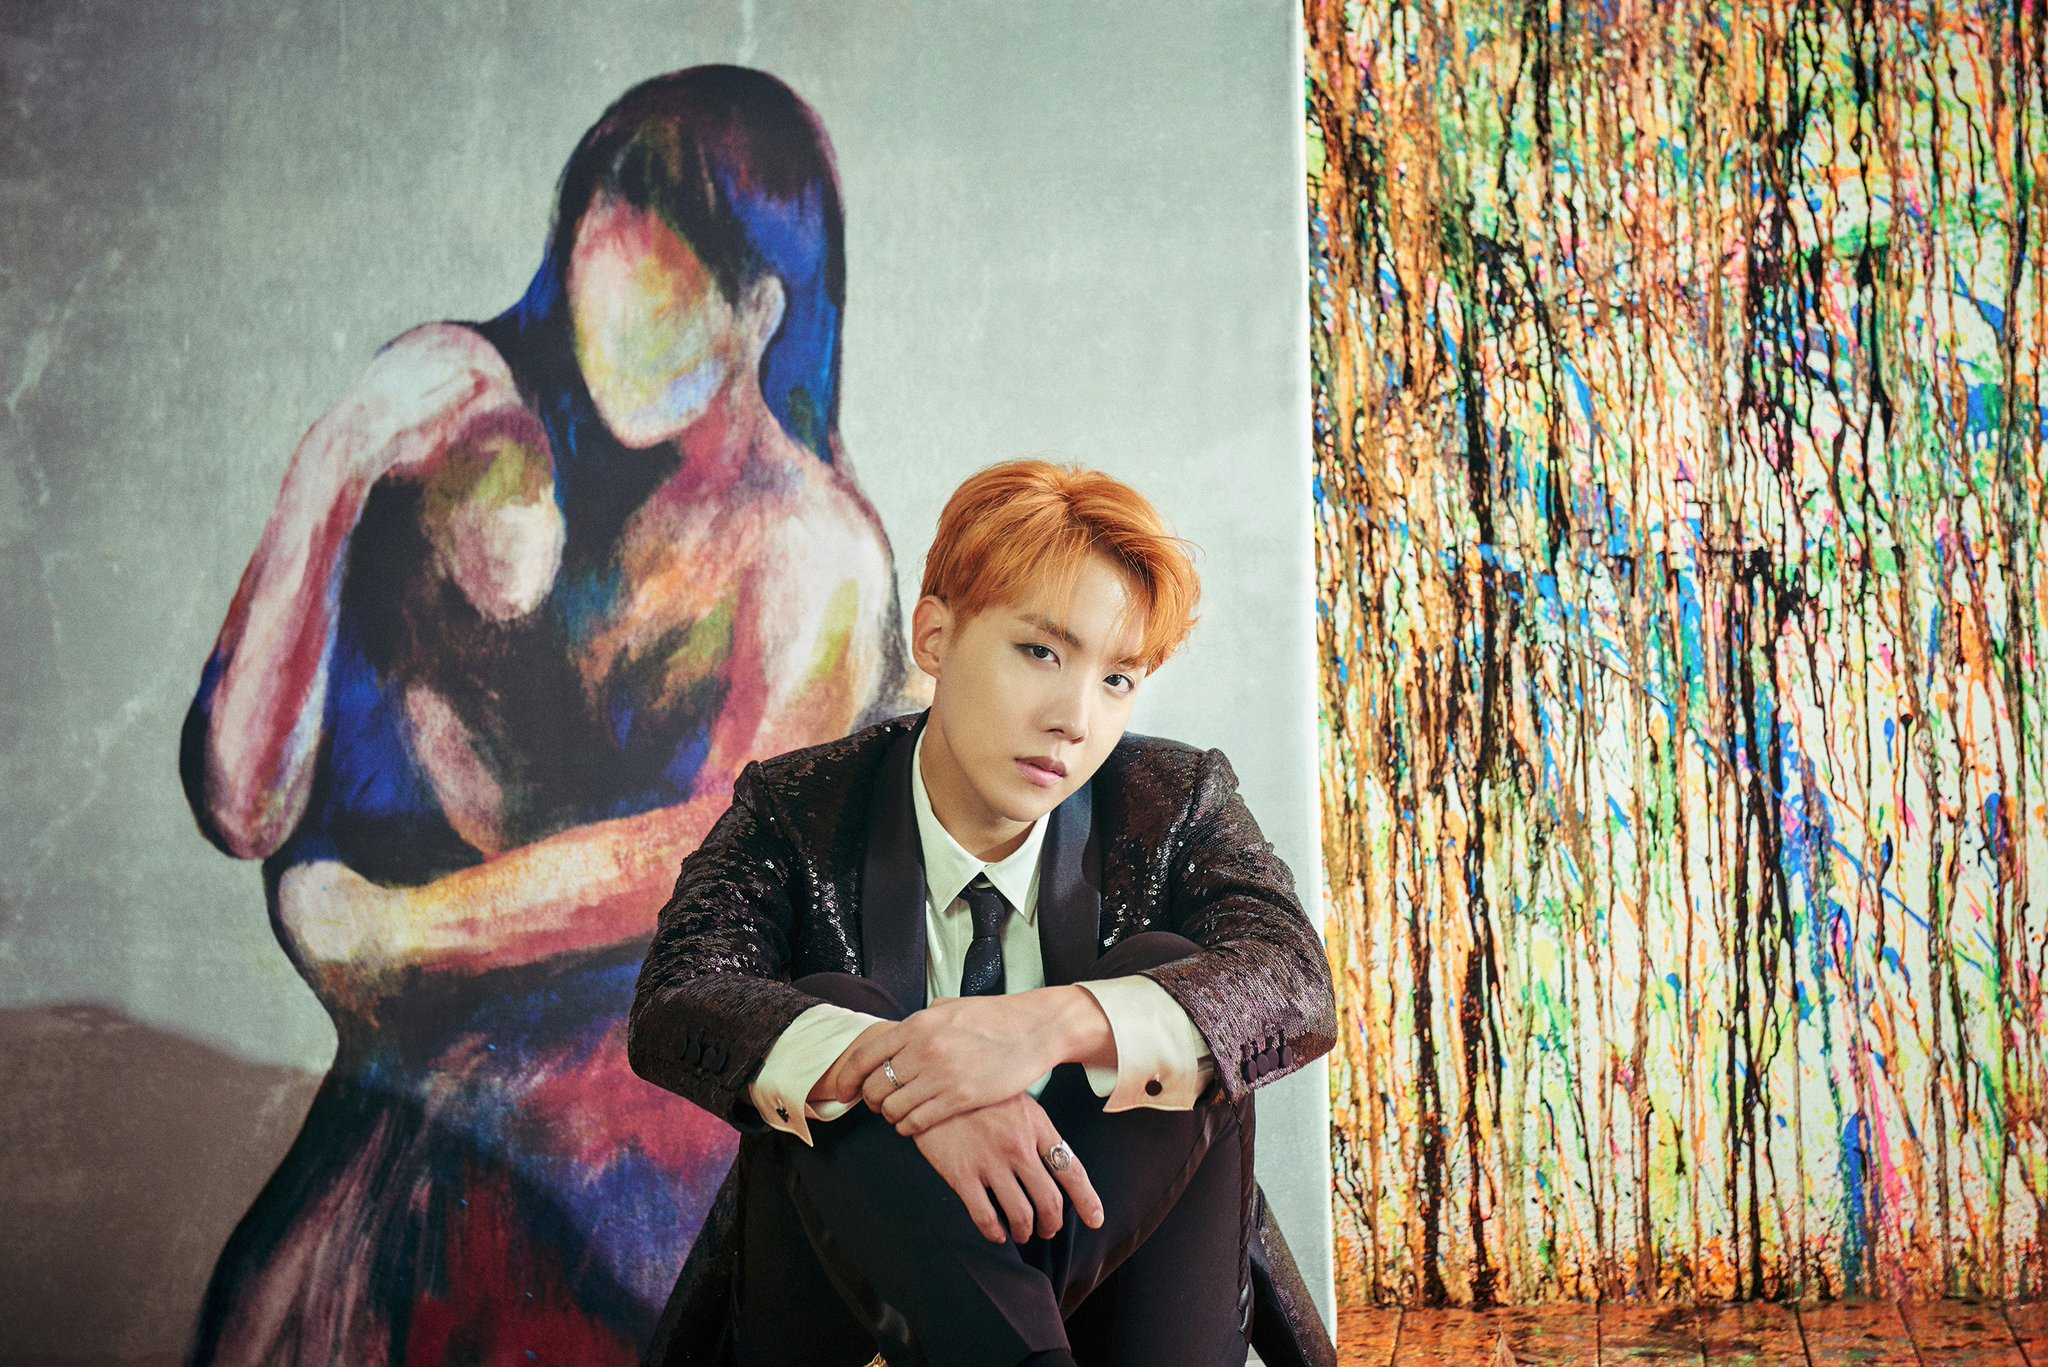 Bts S V And J Hope Feature In Gorgeous New Concept Photos